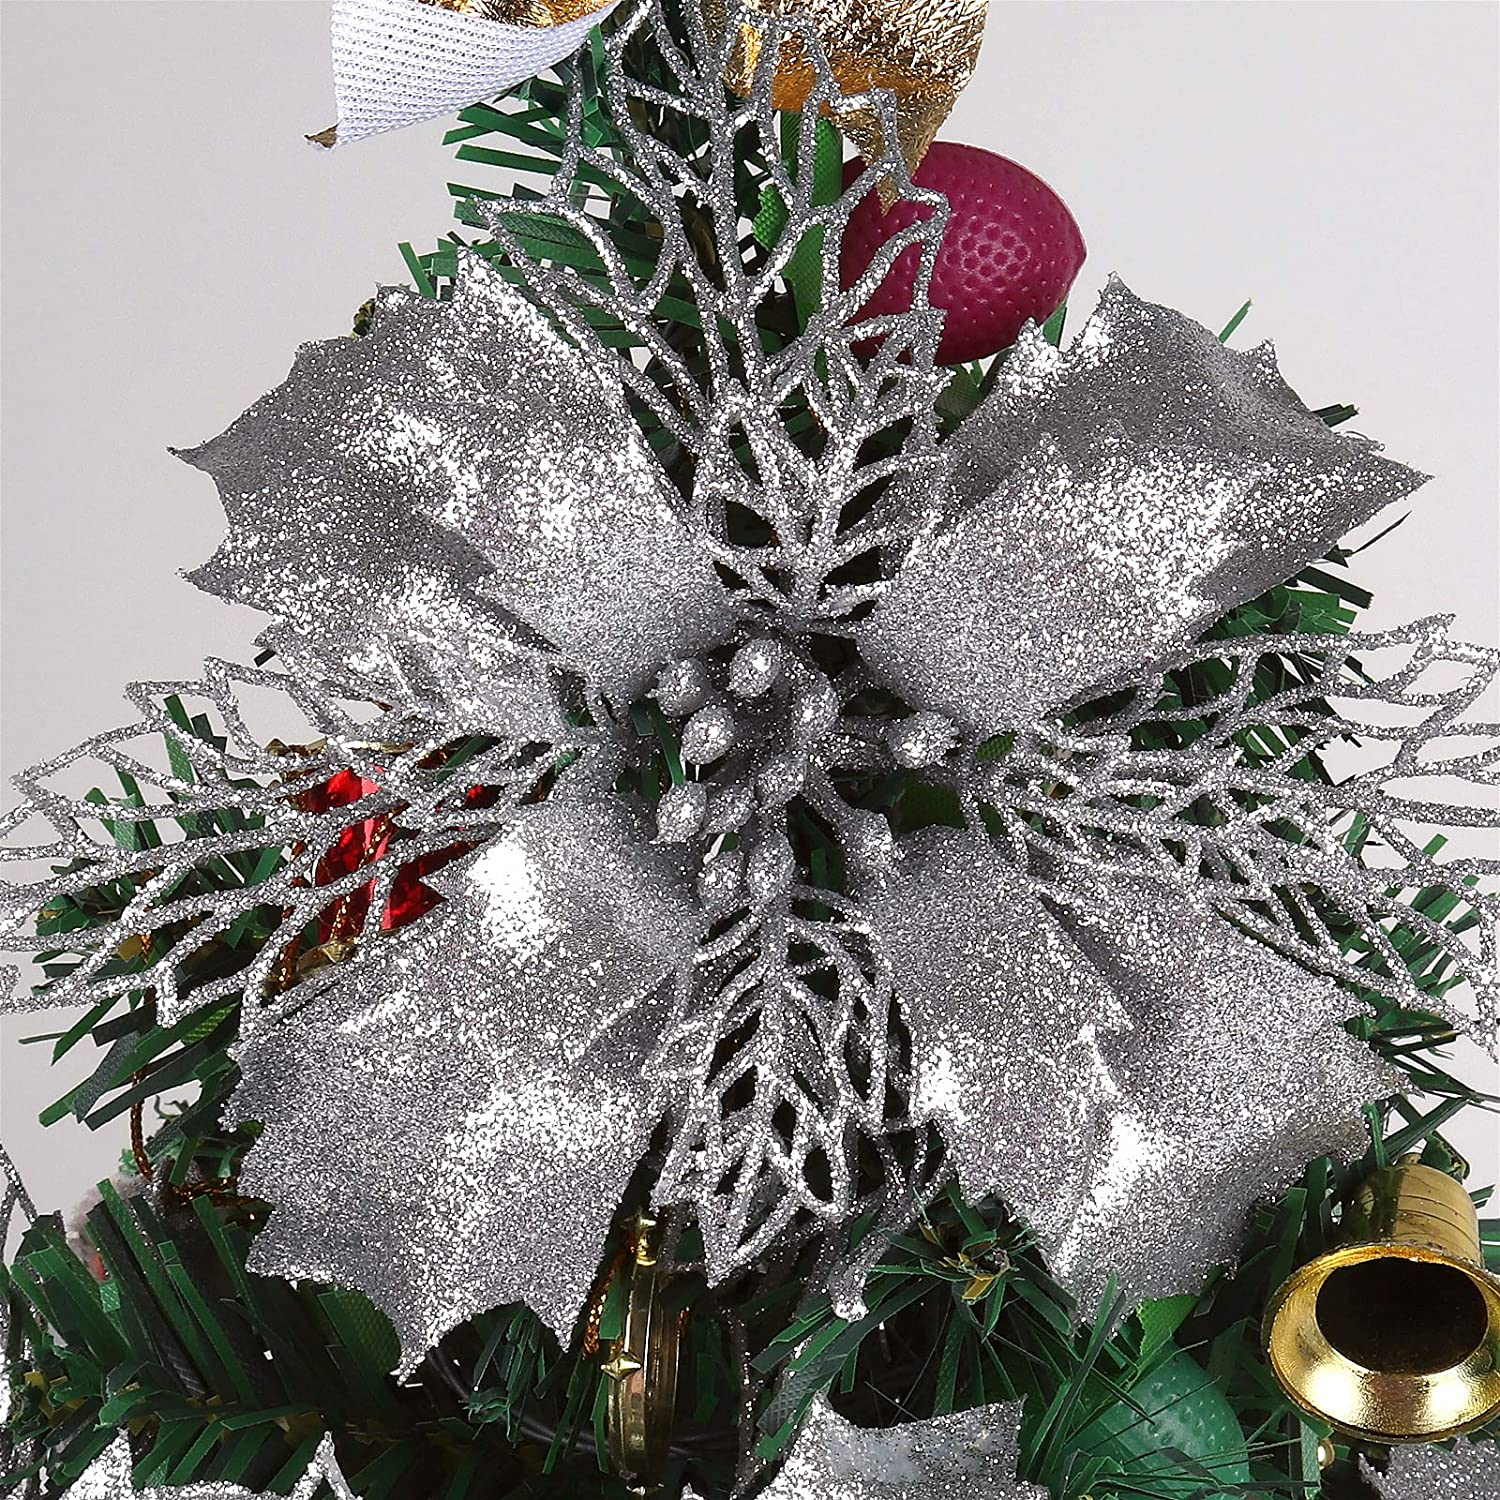 RECUTMS 12 Pieces Glitter Artificial Poinsettia Flowers Christmas Wreath Christmas Tree Flowers, Glitter Gold 6